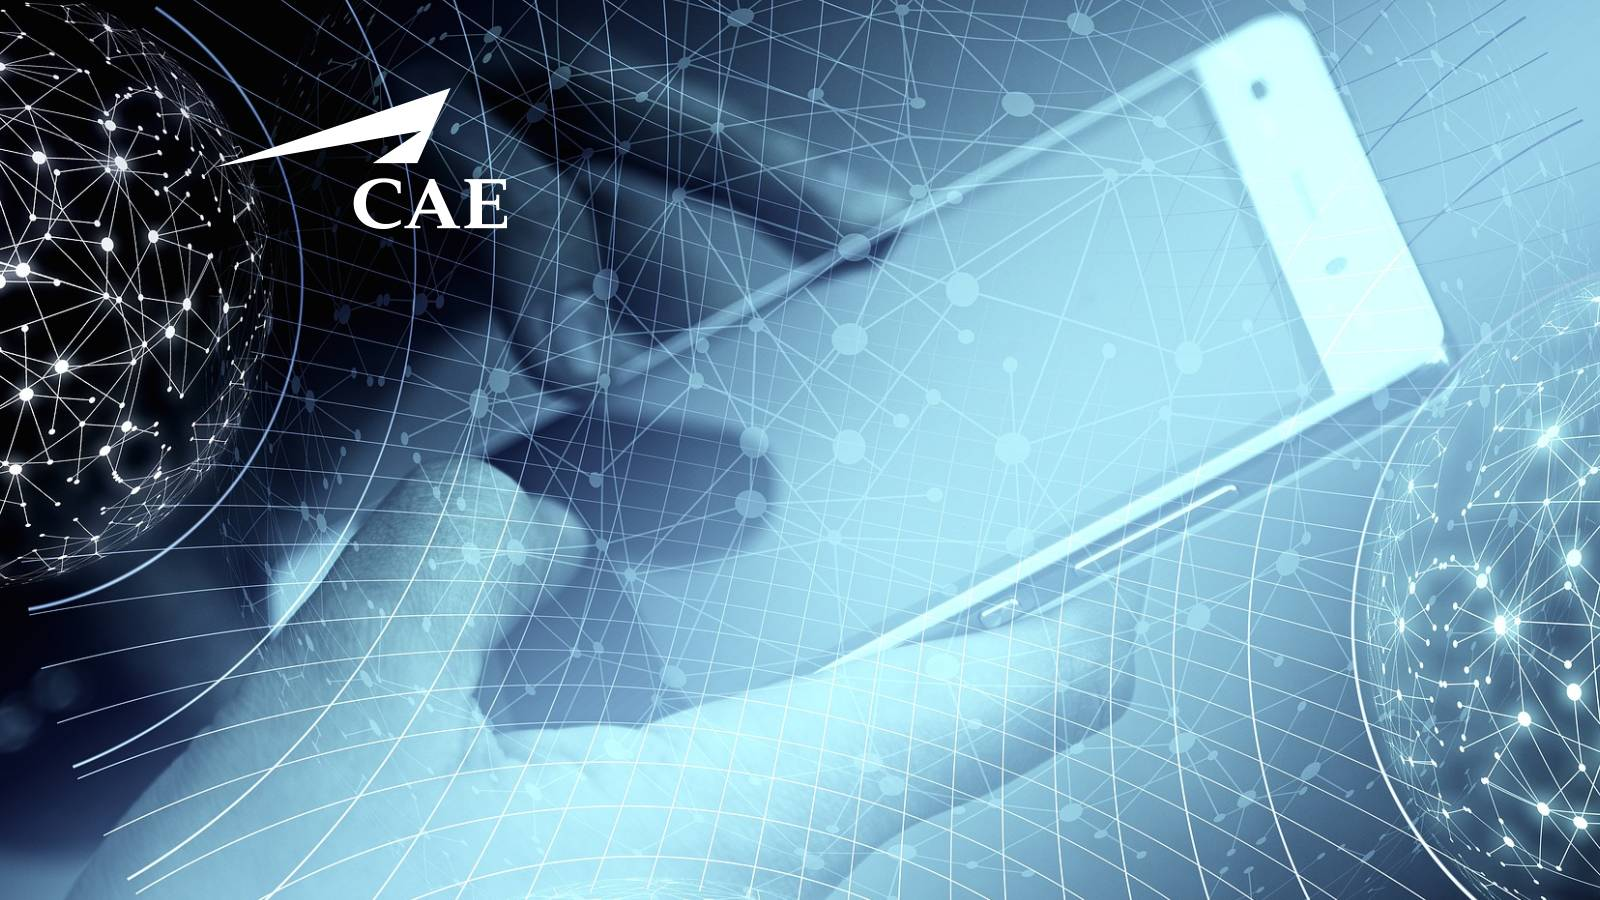 CAE To Invest C$1 Billion In Innovation Over Five Years To Develop The Aviation Technologies Of The Future